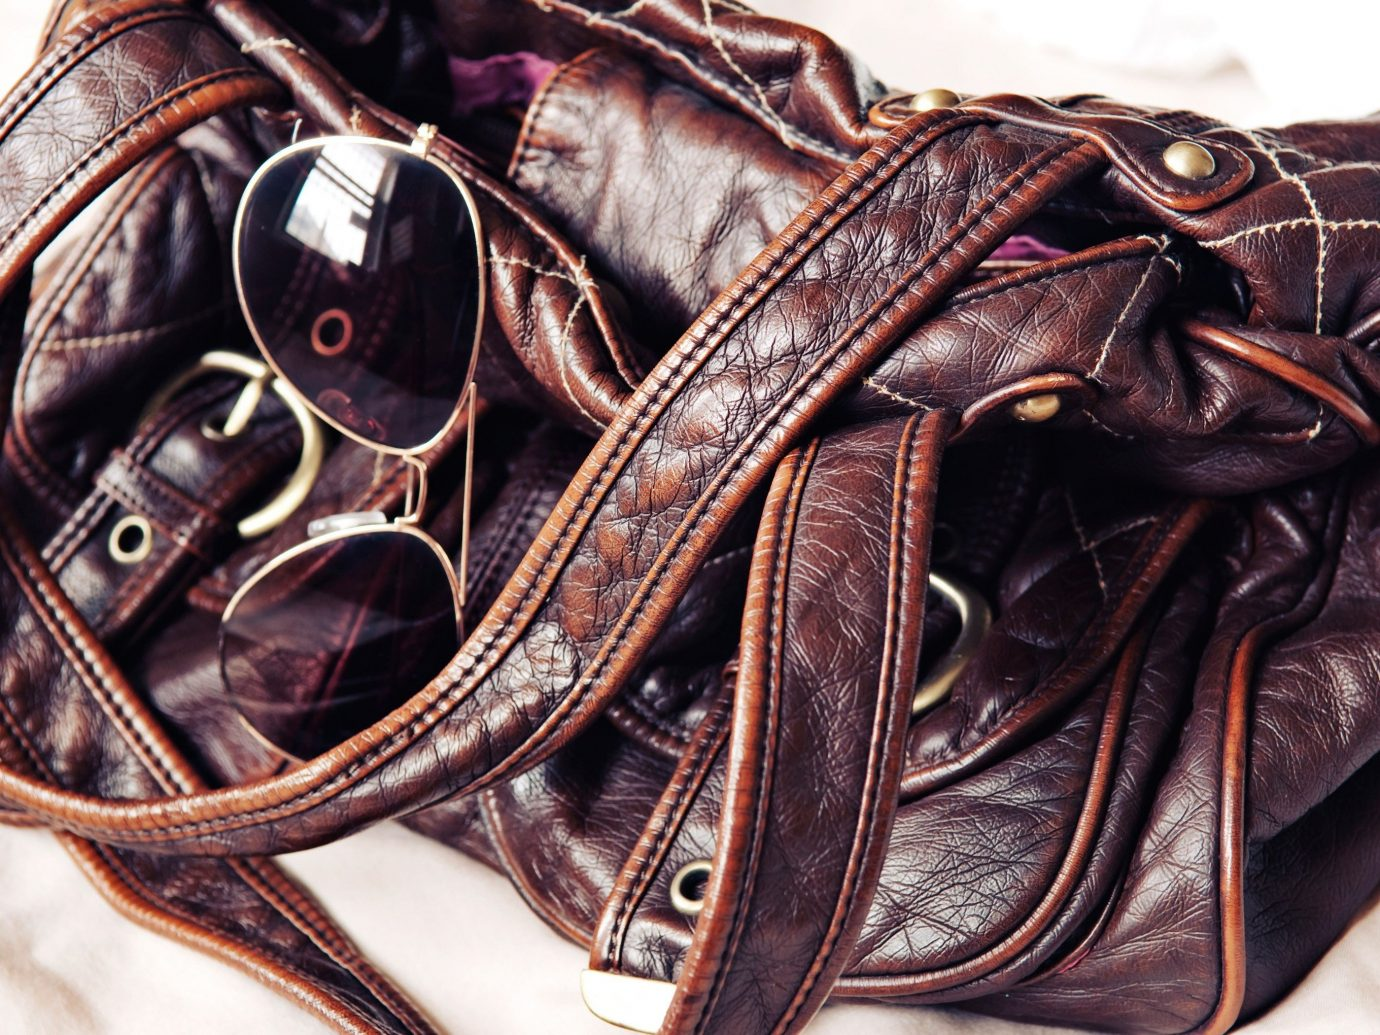 Style + Design handbag bag leather brown shoes fashion accessory footwear bridle textile horse tack material rein feet